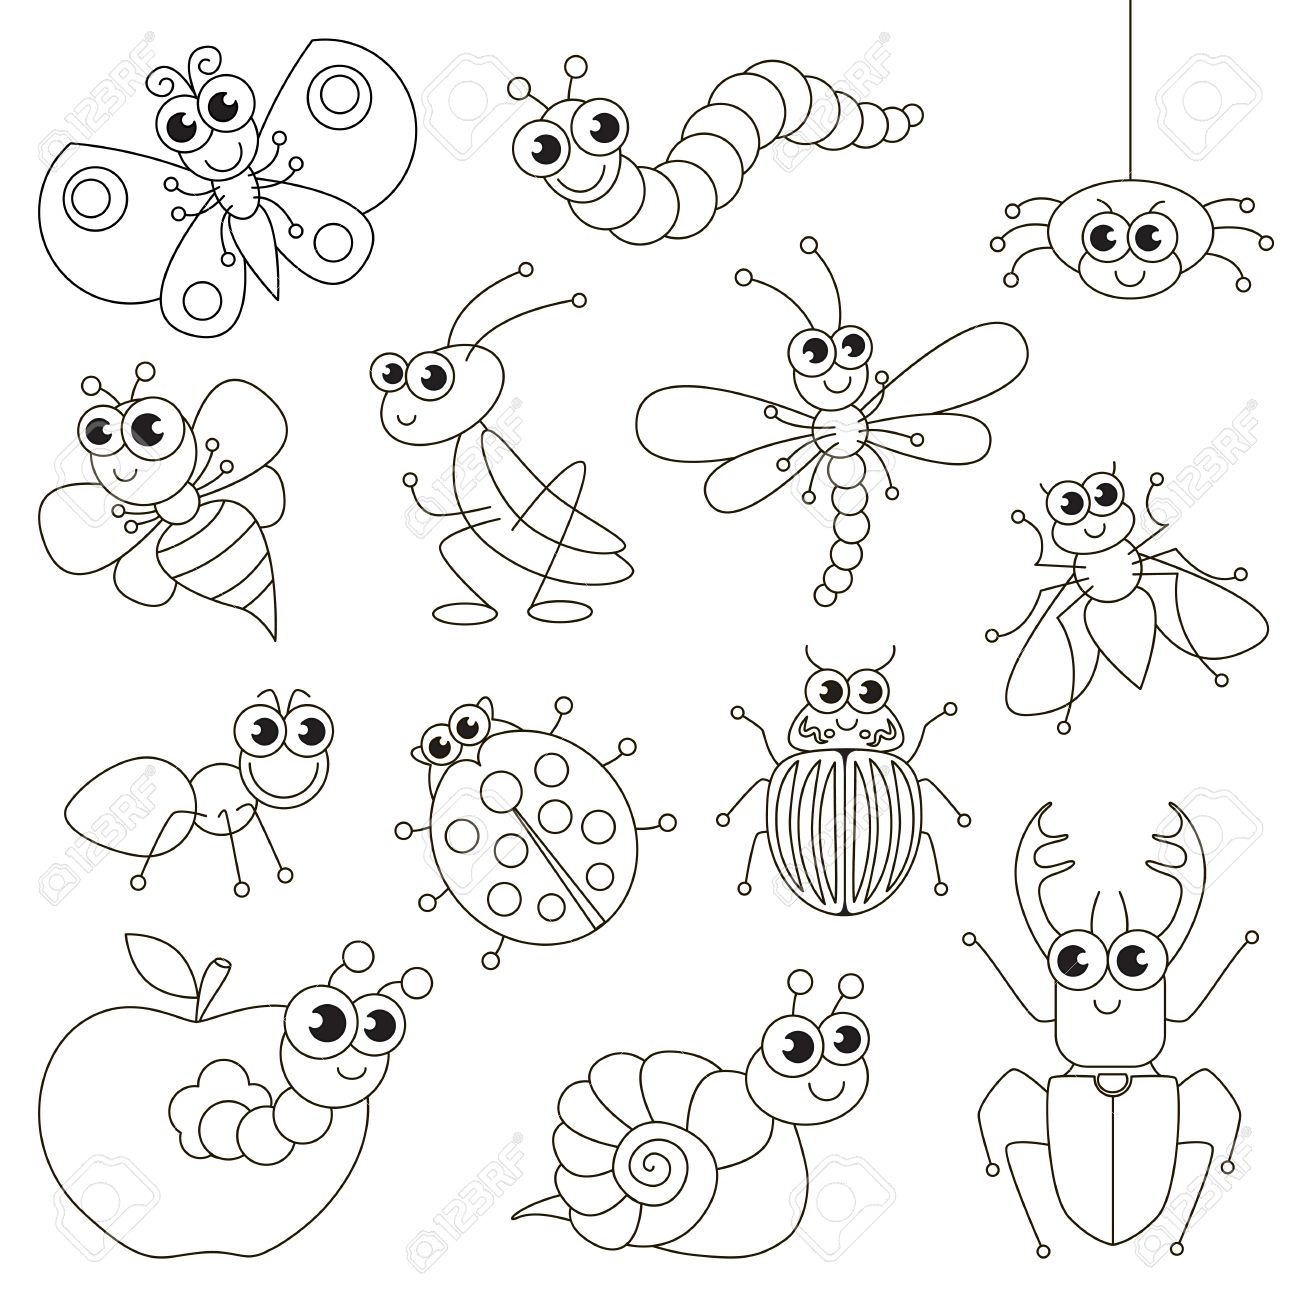 Cute Small Insects Set To Be Colored, The Big Coloring Book For ...